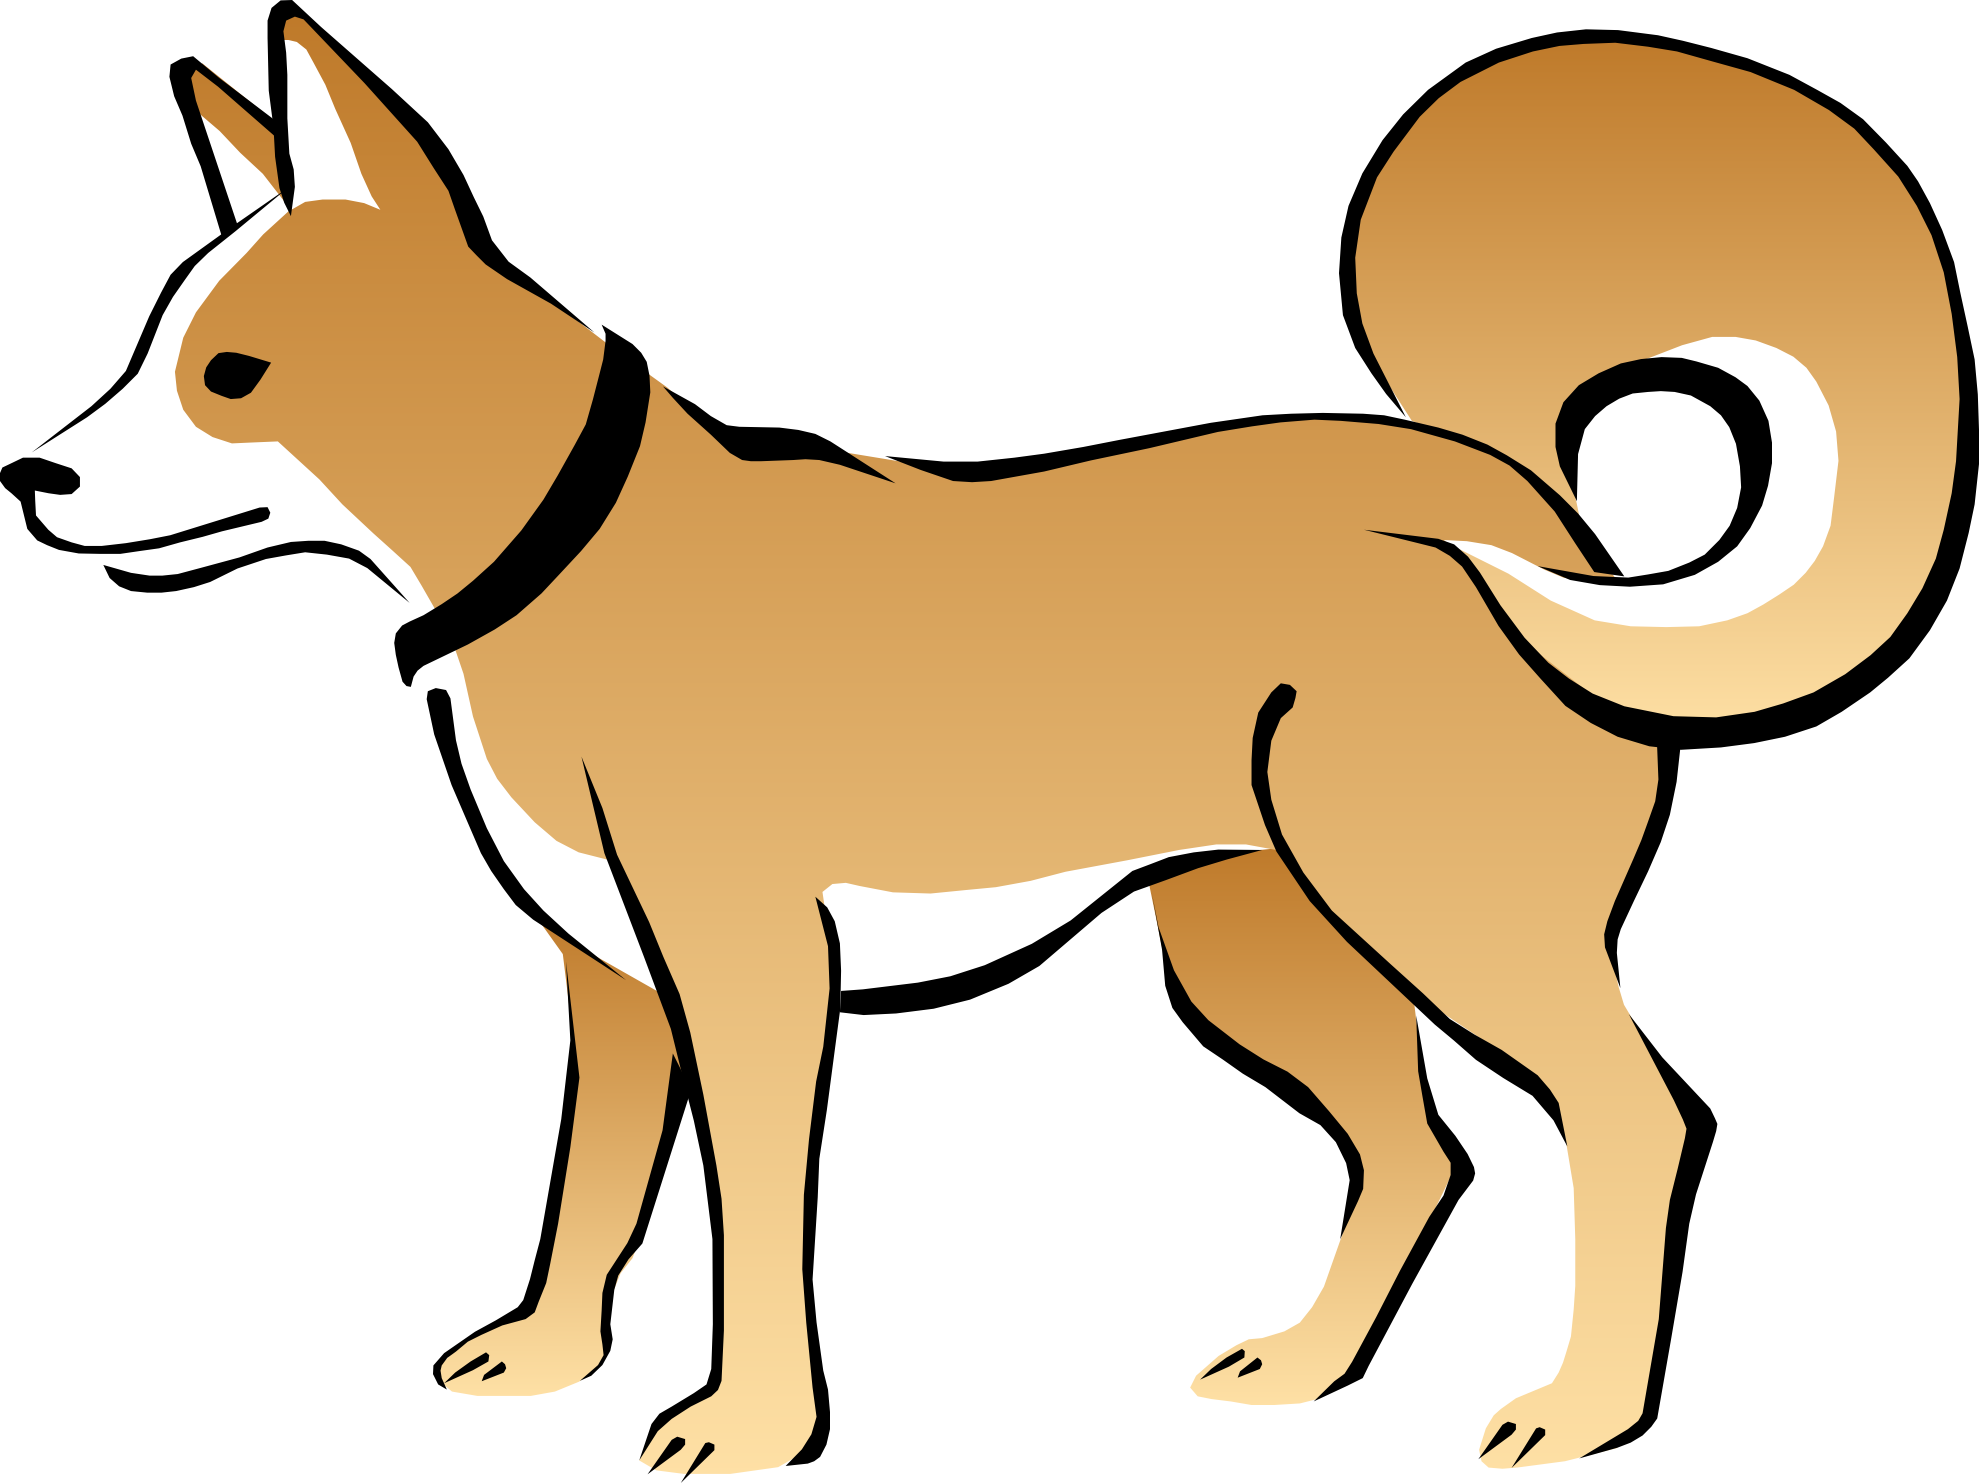 Dog on beach clipart graphic library stock Big dog clipart - ClipartFest graphic library stock